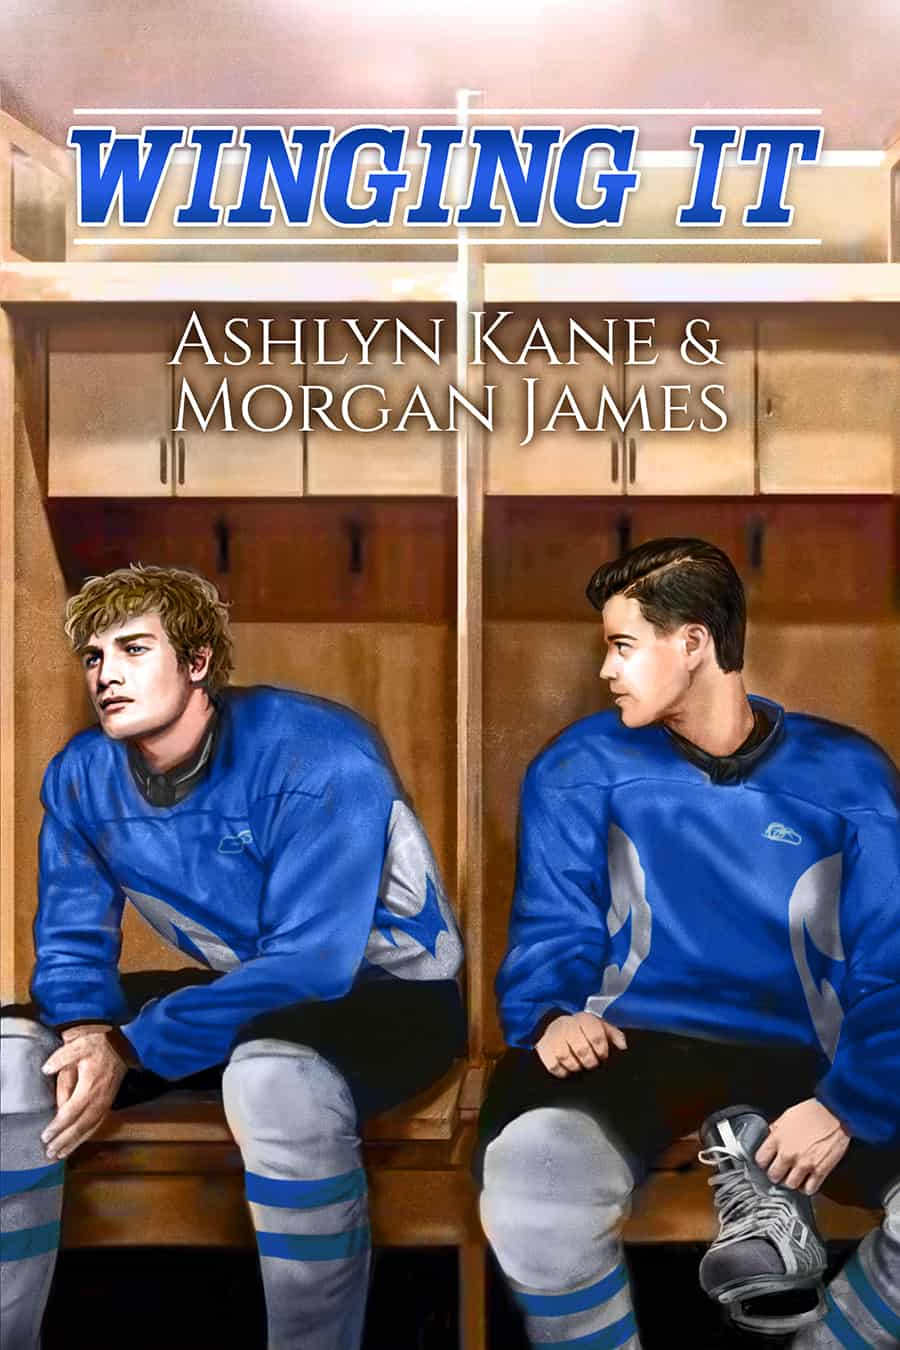 Blog Tour, Review and Giveaway: Winging It by Ashlyn Kane and Morgan James